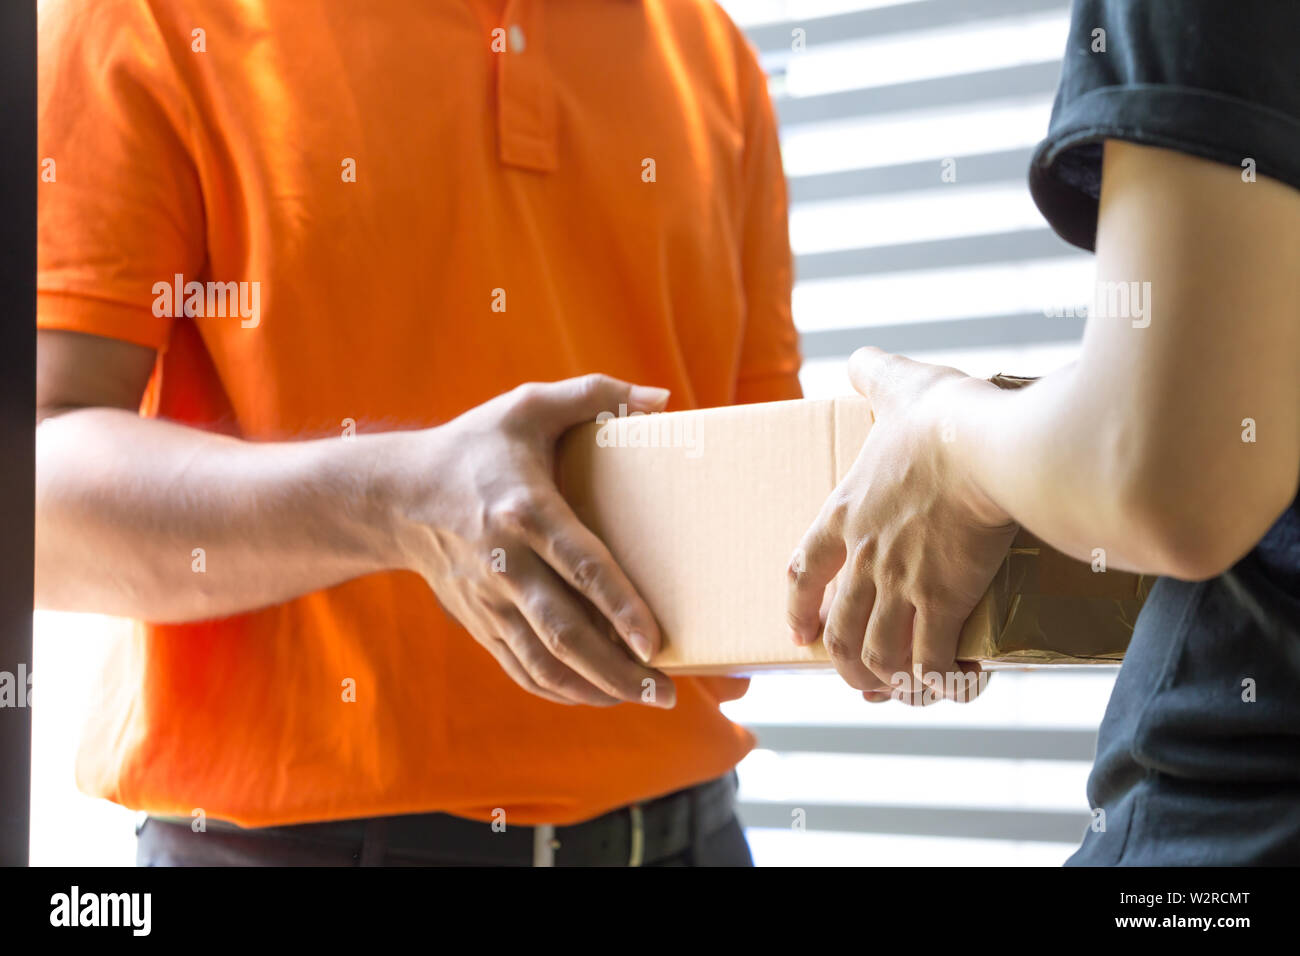 Woman hand accepting a delivery of boxes from deliveryman. Home delivery courier service and shipment concept - Stock Image